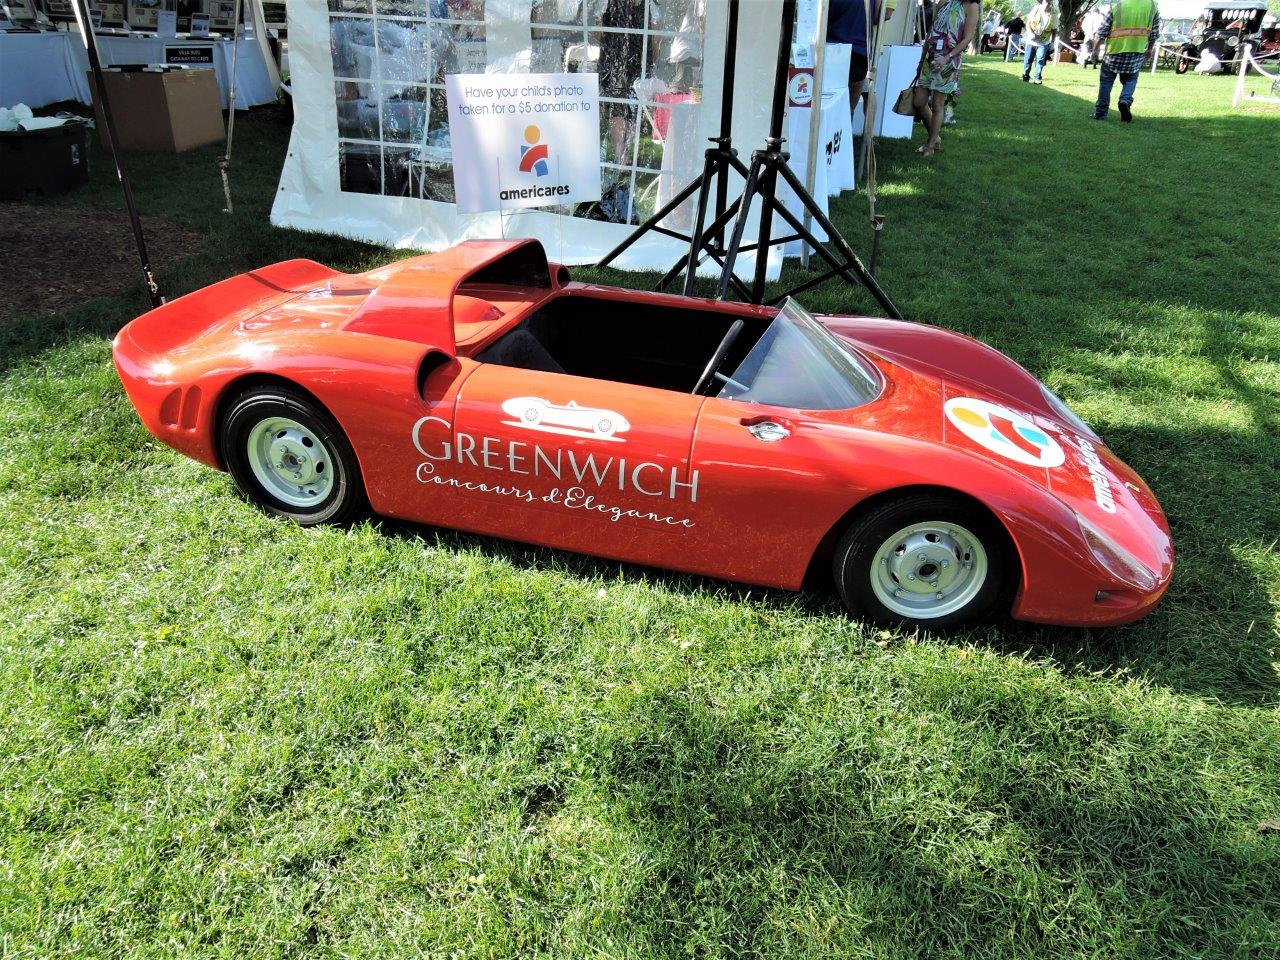 2018 Greenwich Concours